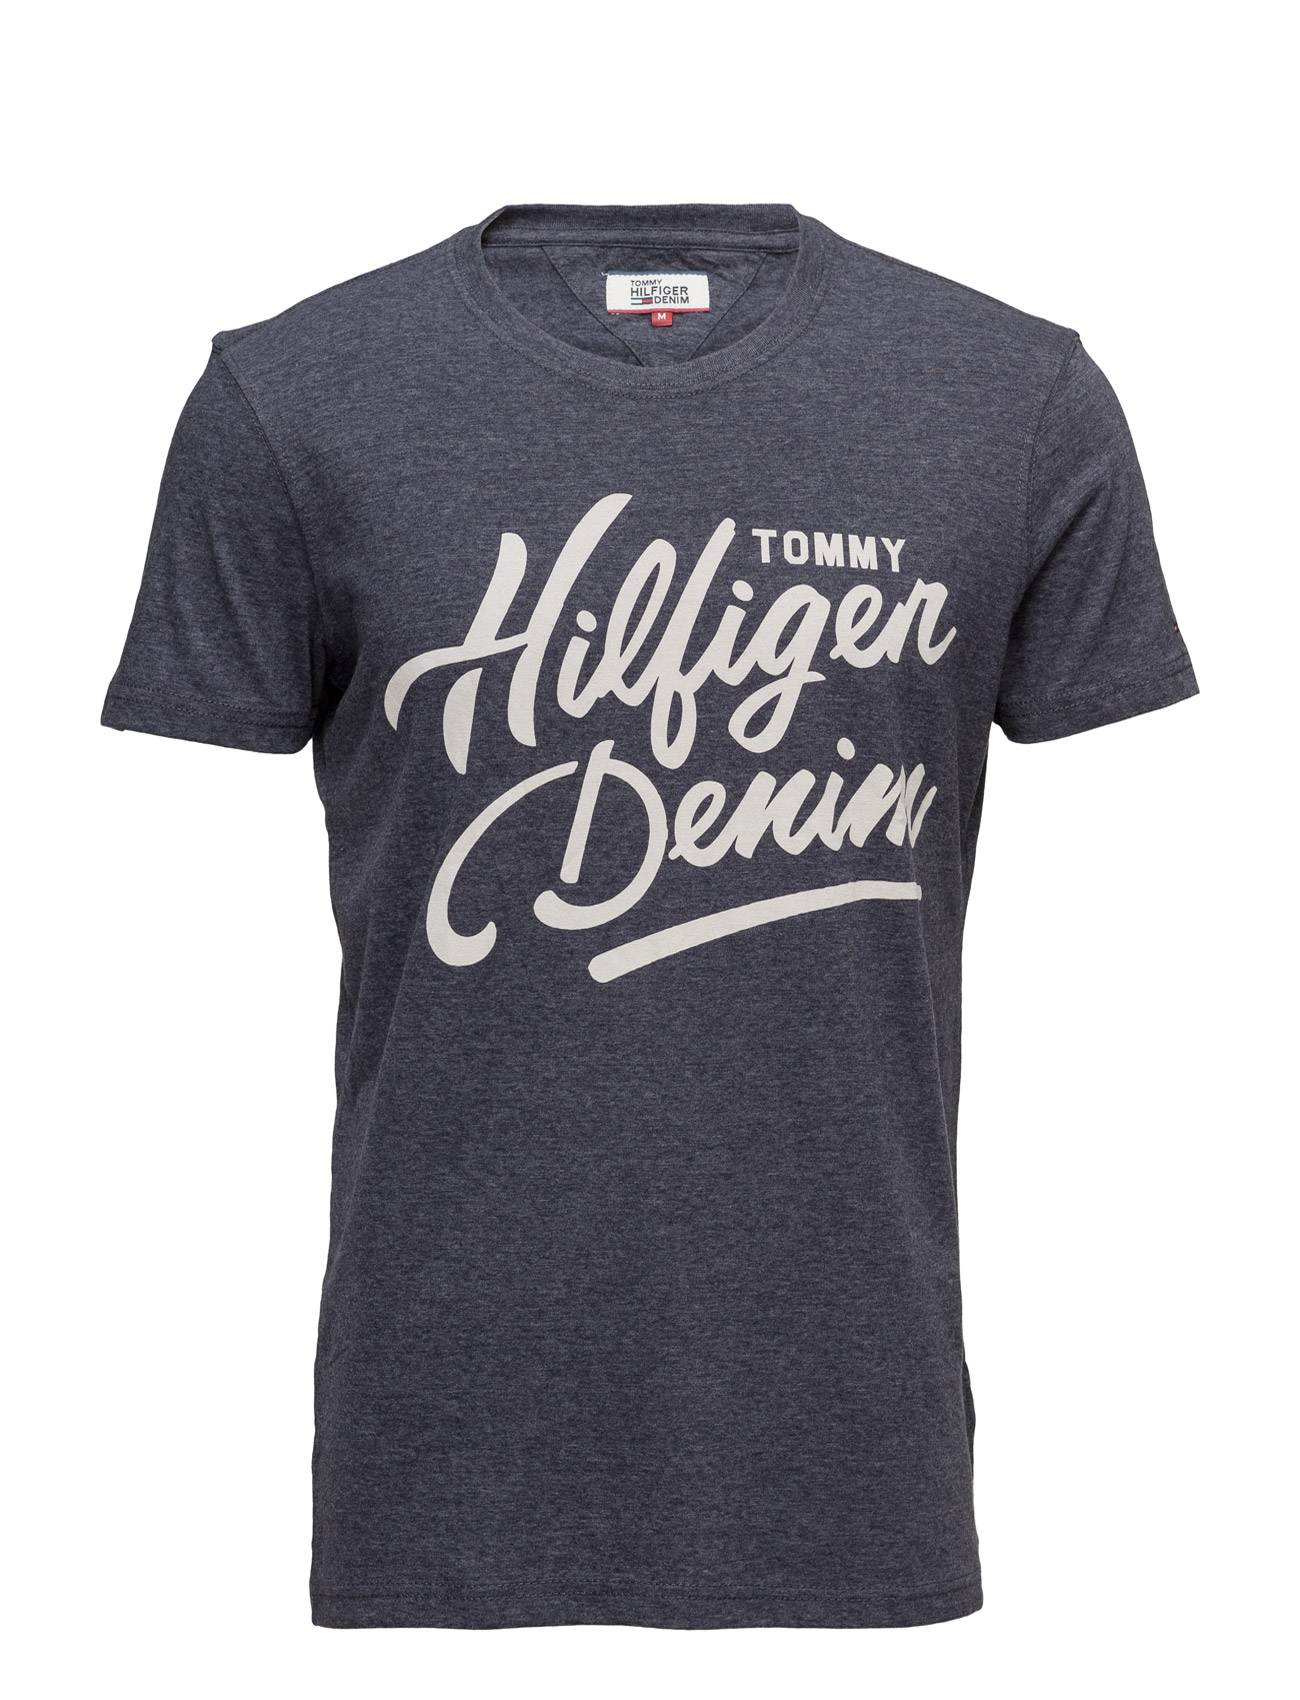 Tommy Jeans Thdm Basic Cn T-Shirt S/S 26